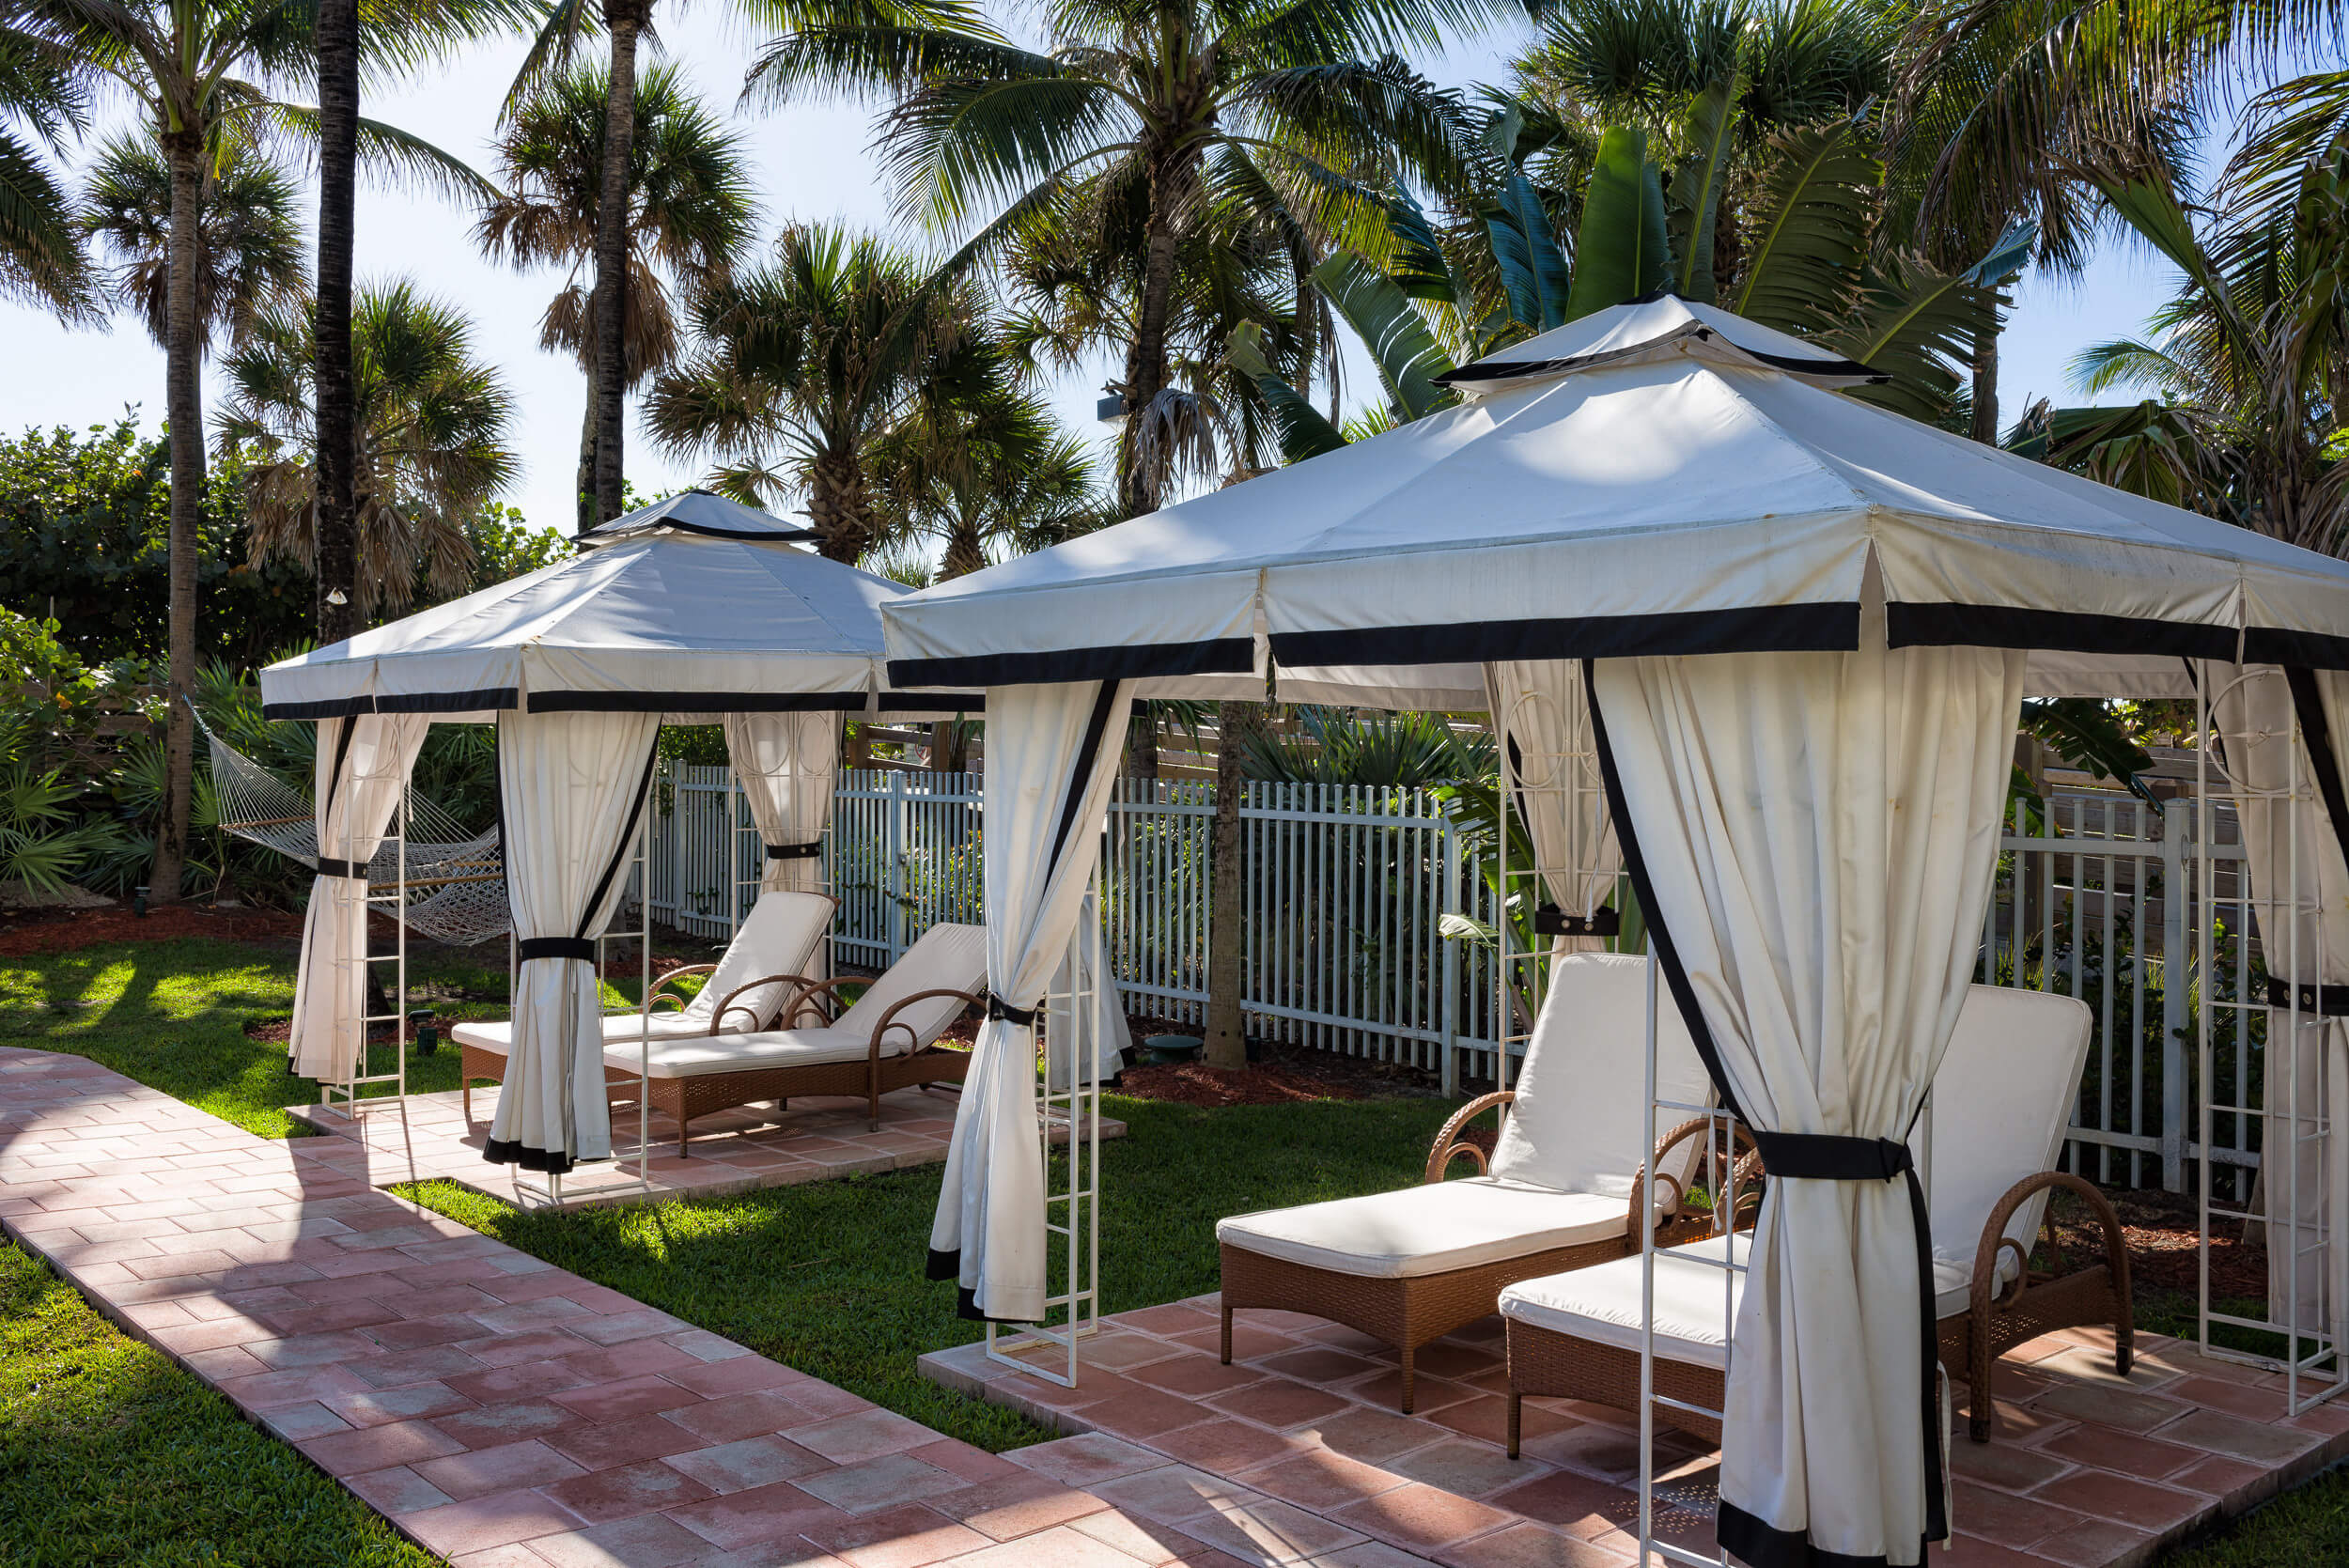 Private cabanas available for rent | Westgate South Beach Oceanfront Resort